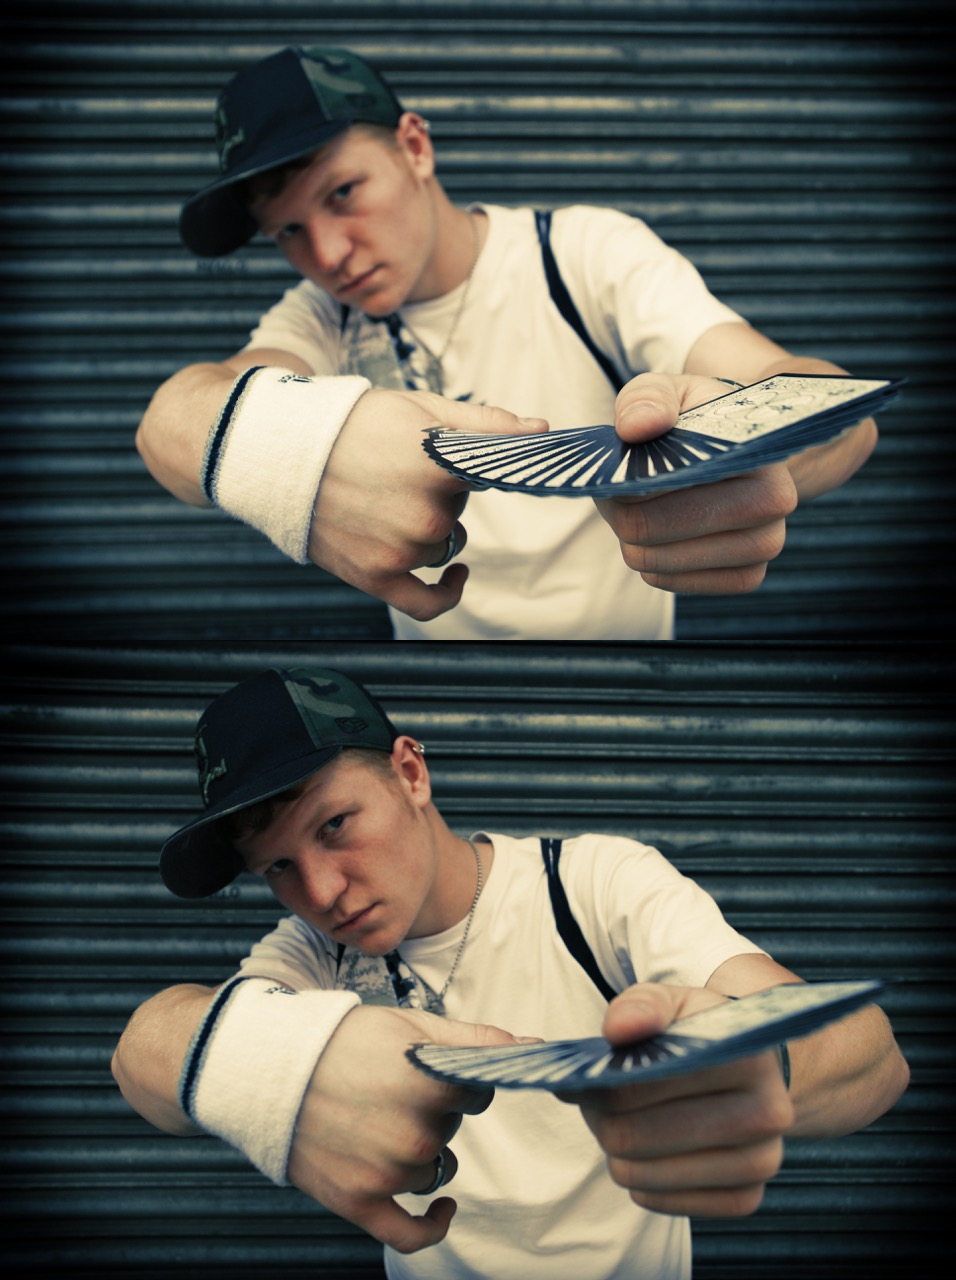 Liam Walsh Magic Kristian Yeomans Photoshoot London Street Magician Card Tricks Illusions